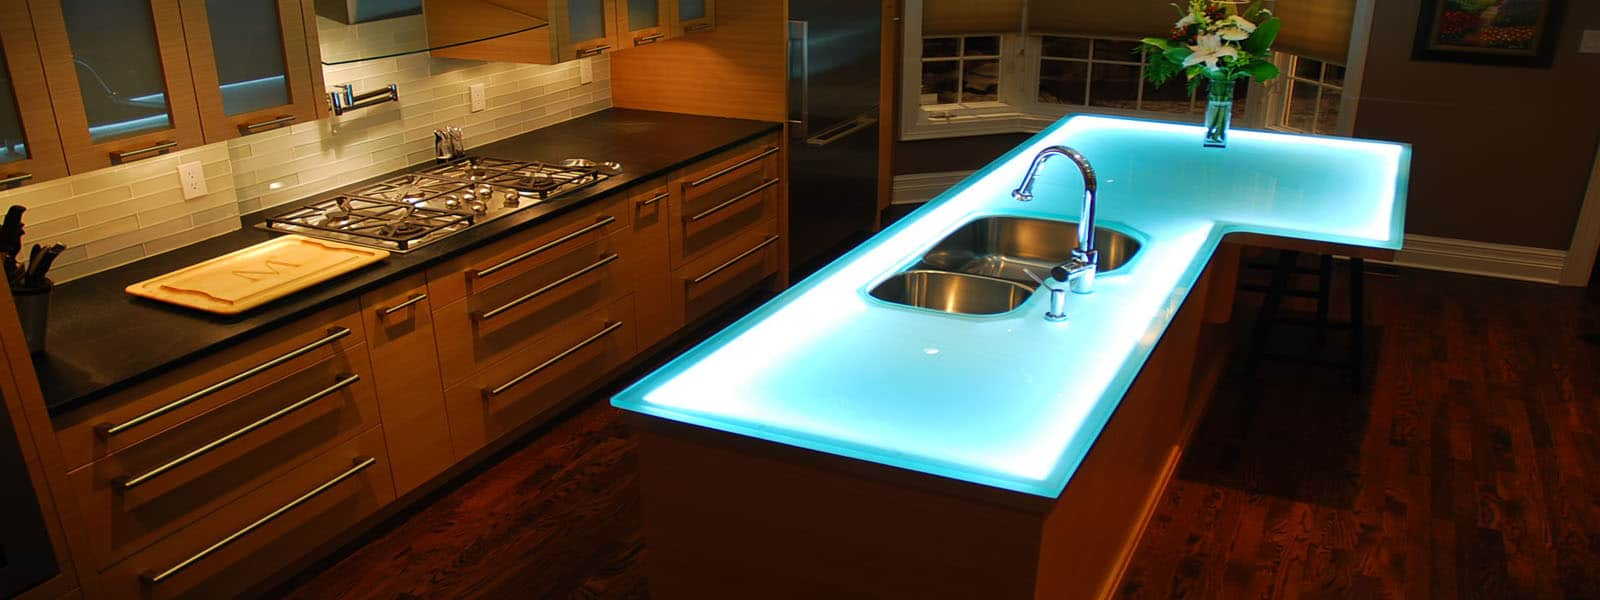 Modern Kitchen Countertops from Unusual Materials: 30 Ideas on Modern Kitchen Counter  id=26802